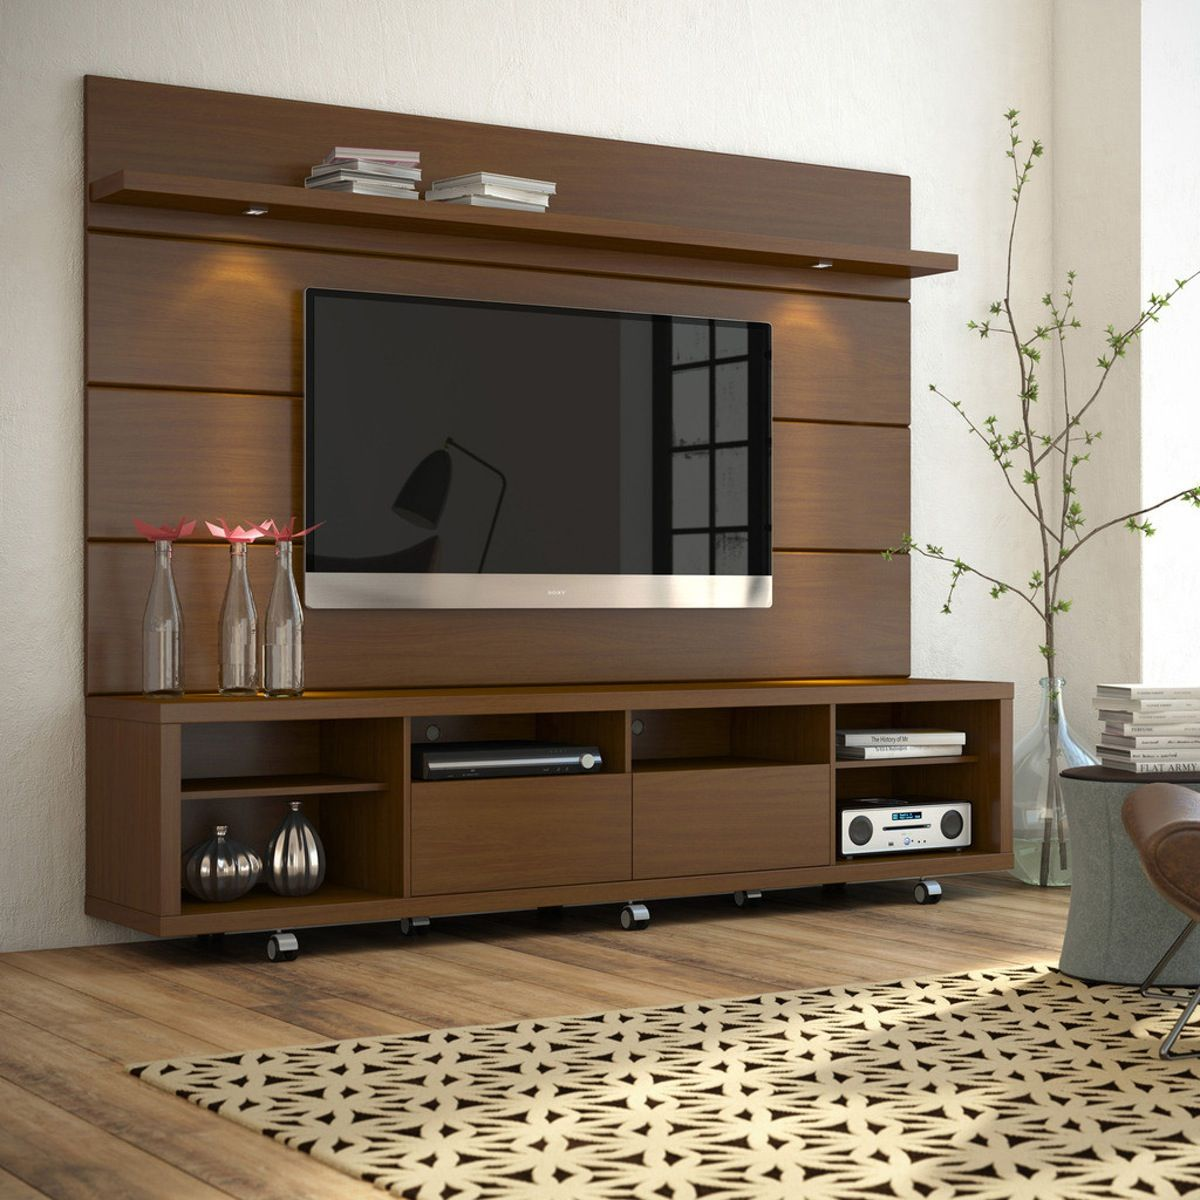 Manhattan Comfort Cabrini Tv Stand And Floating Wall Tv Panel With Led Lights 2 2 Tv Room Design Living Room Tv Cabinet Living Room Tv